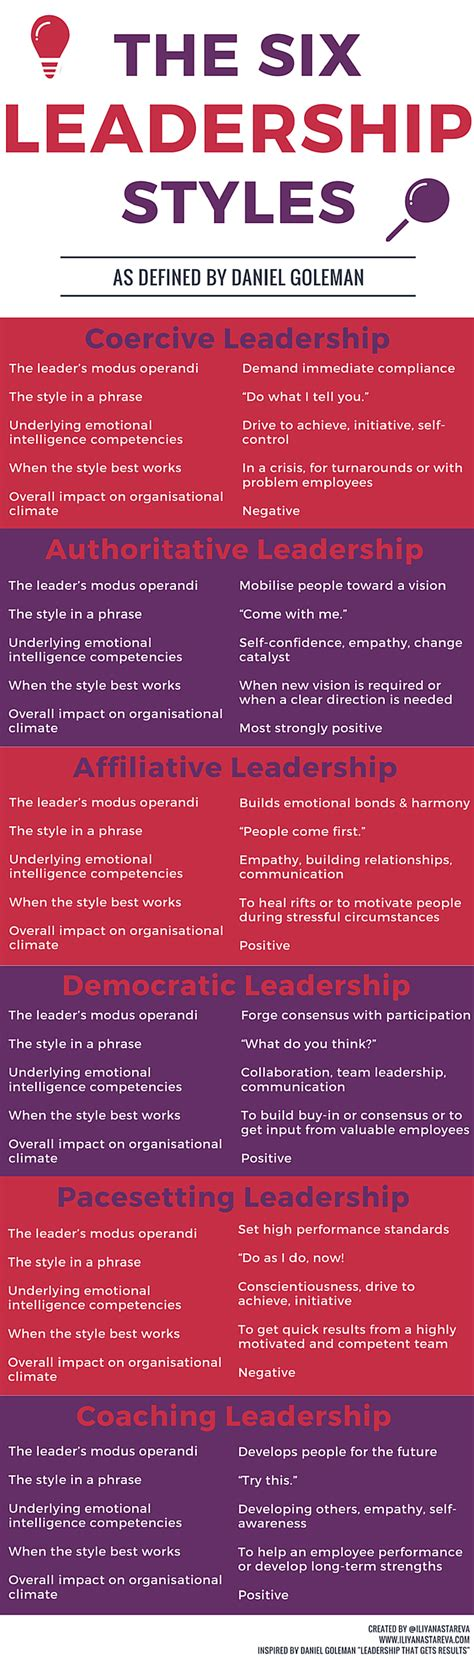 leadership styles    master  infographic